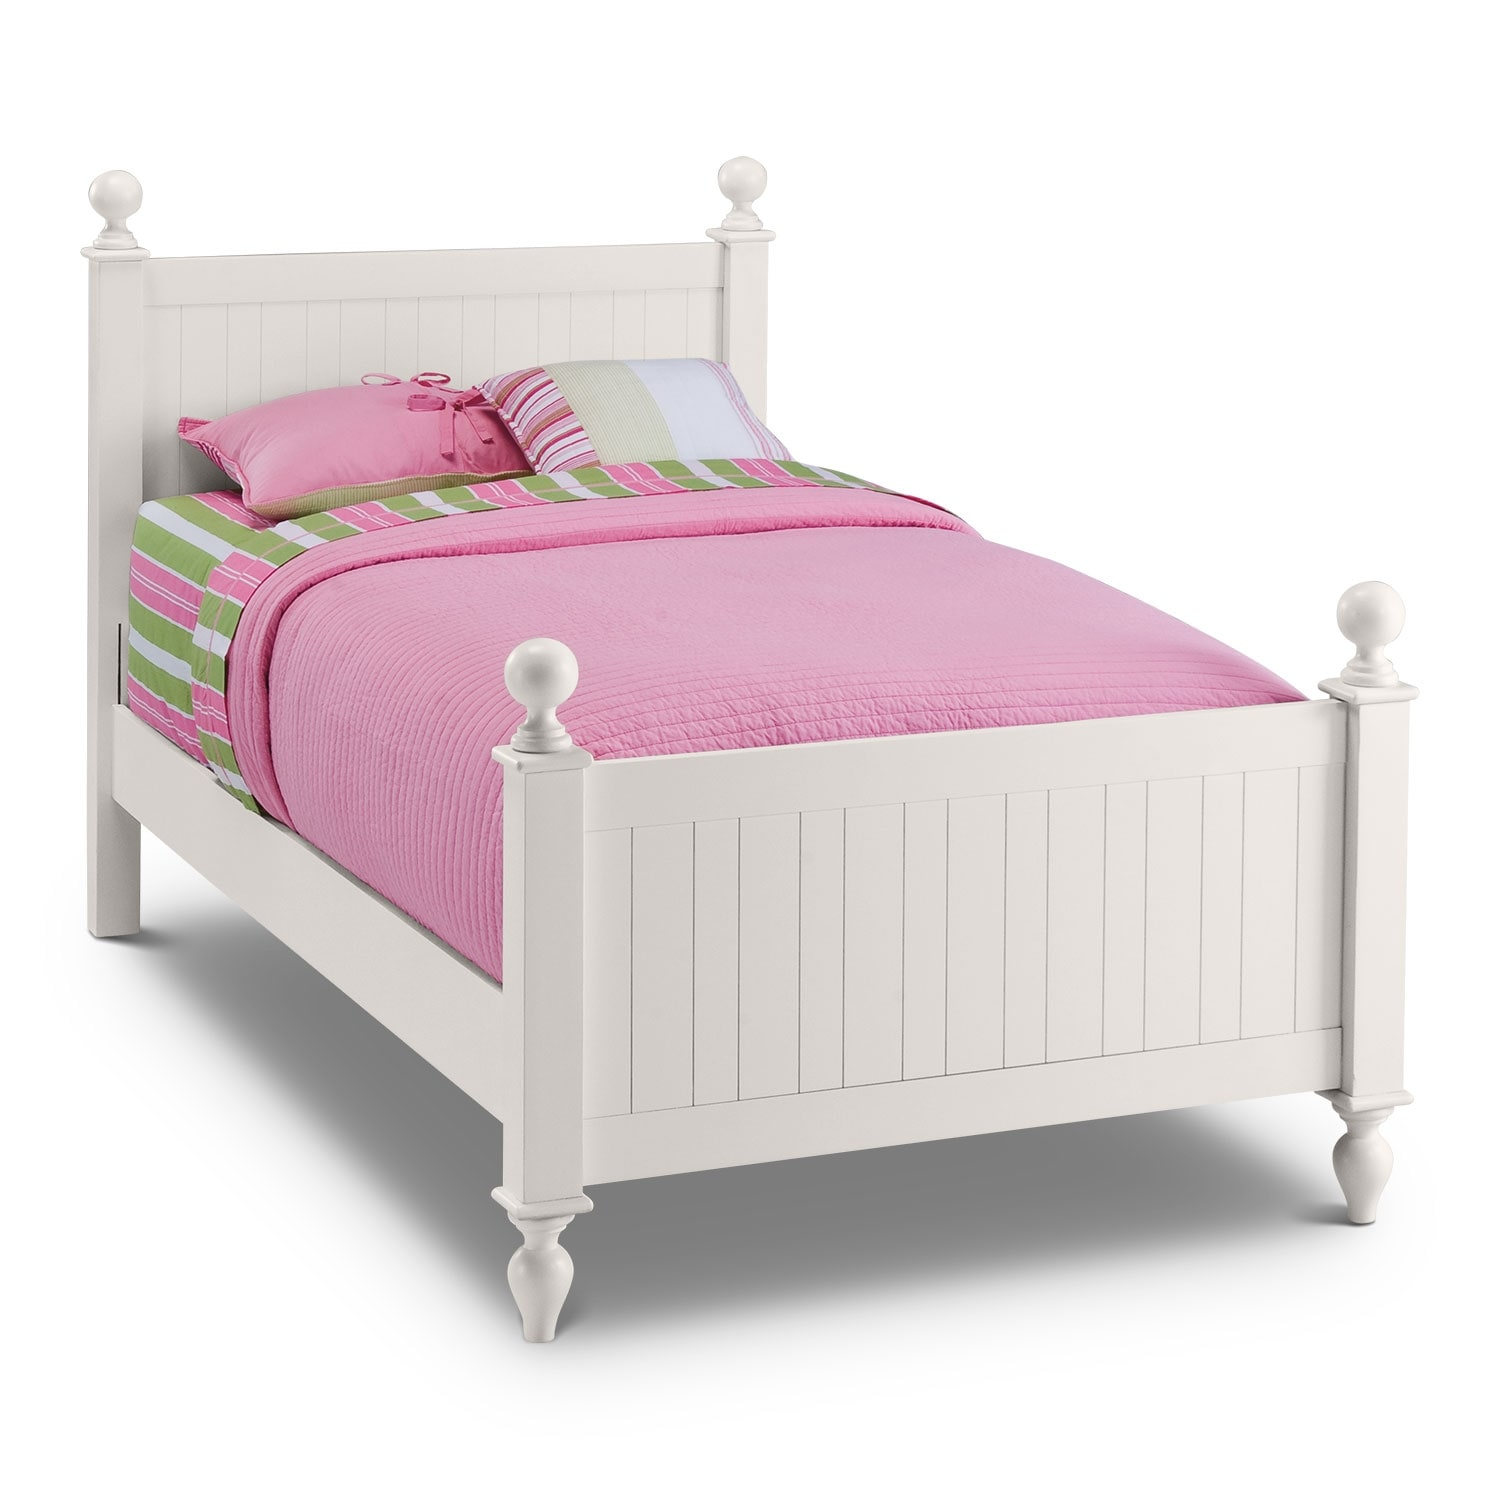 twin bed girls colorworks bed white american signature furniture 13633